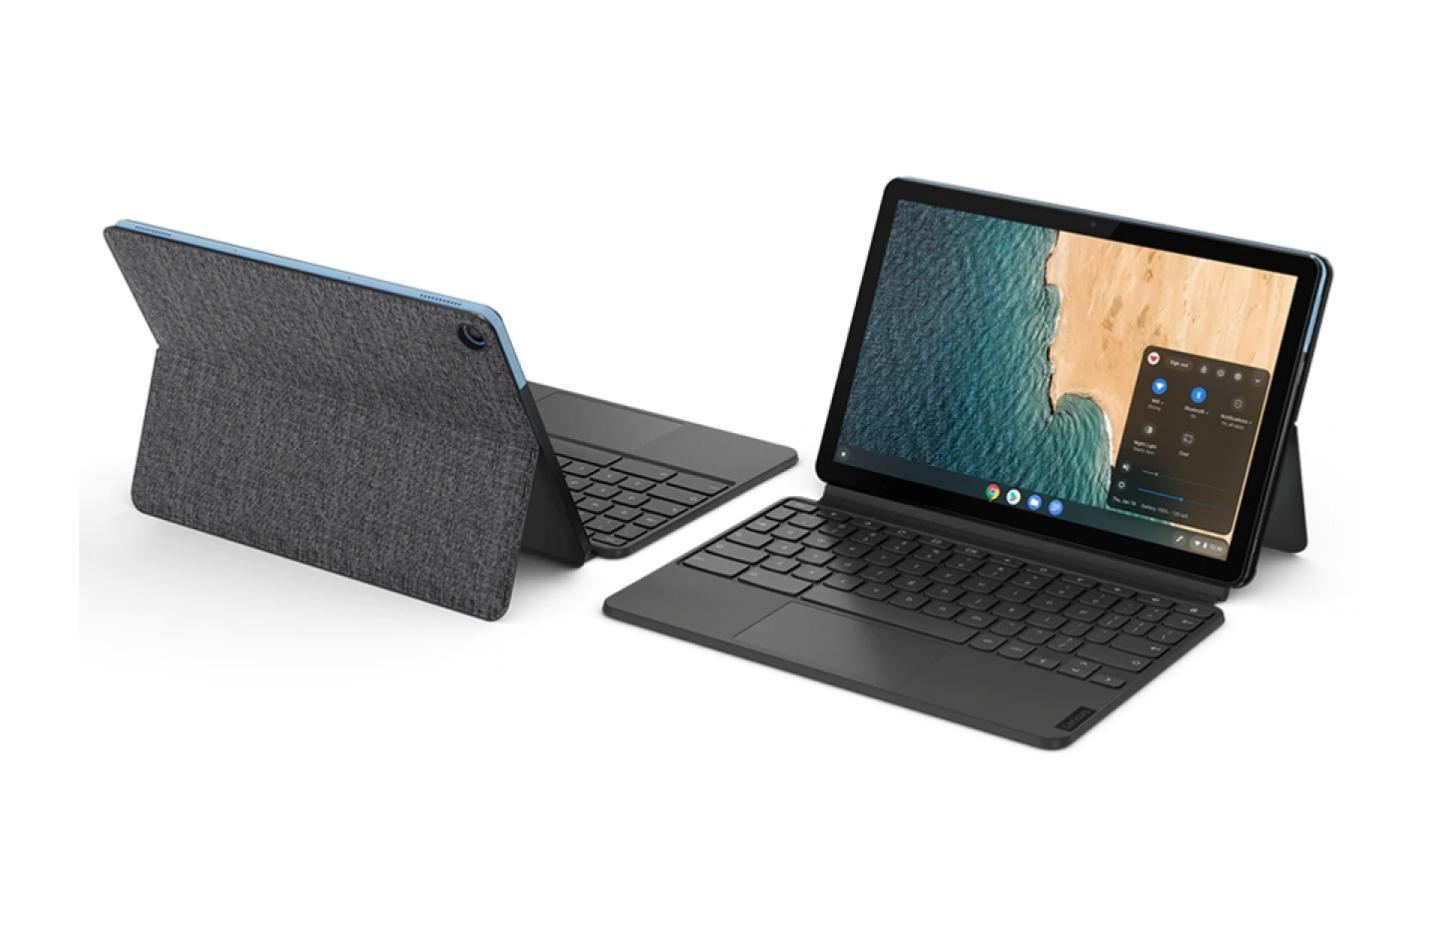 Lenovo IdeaPad Duet Chromebook : les tablettes « Google » tentent un come-back sous Chrome OS